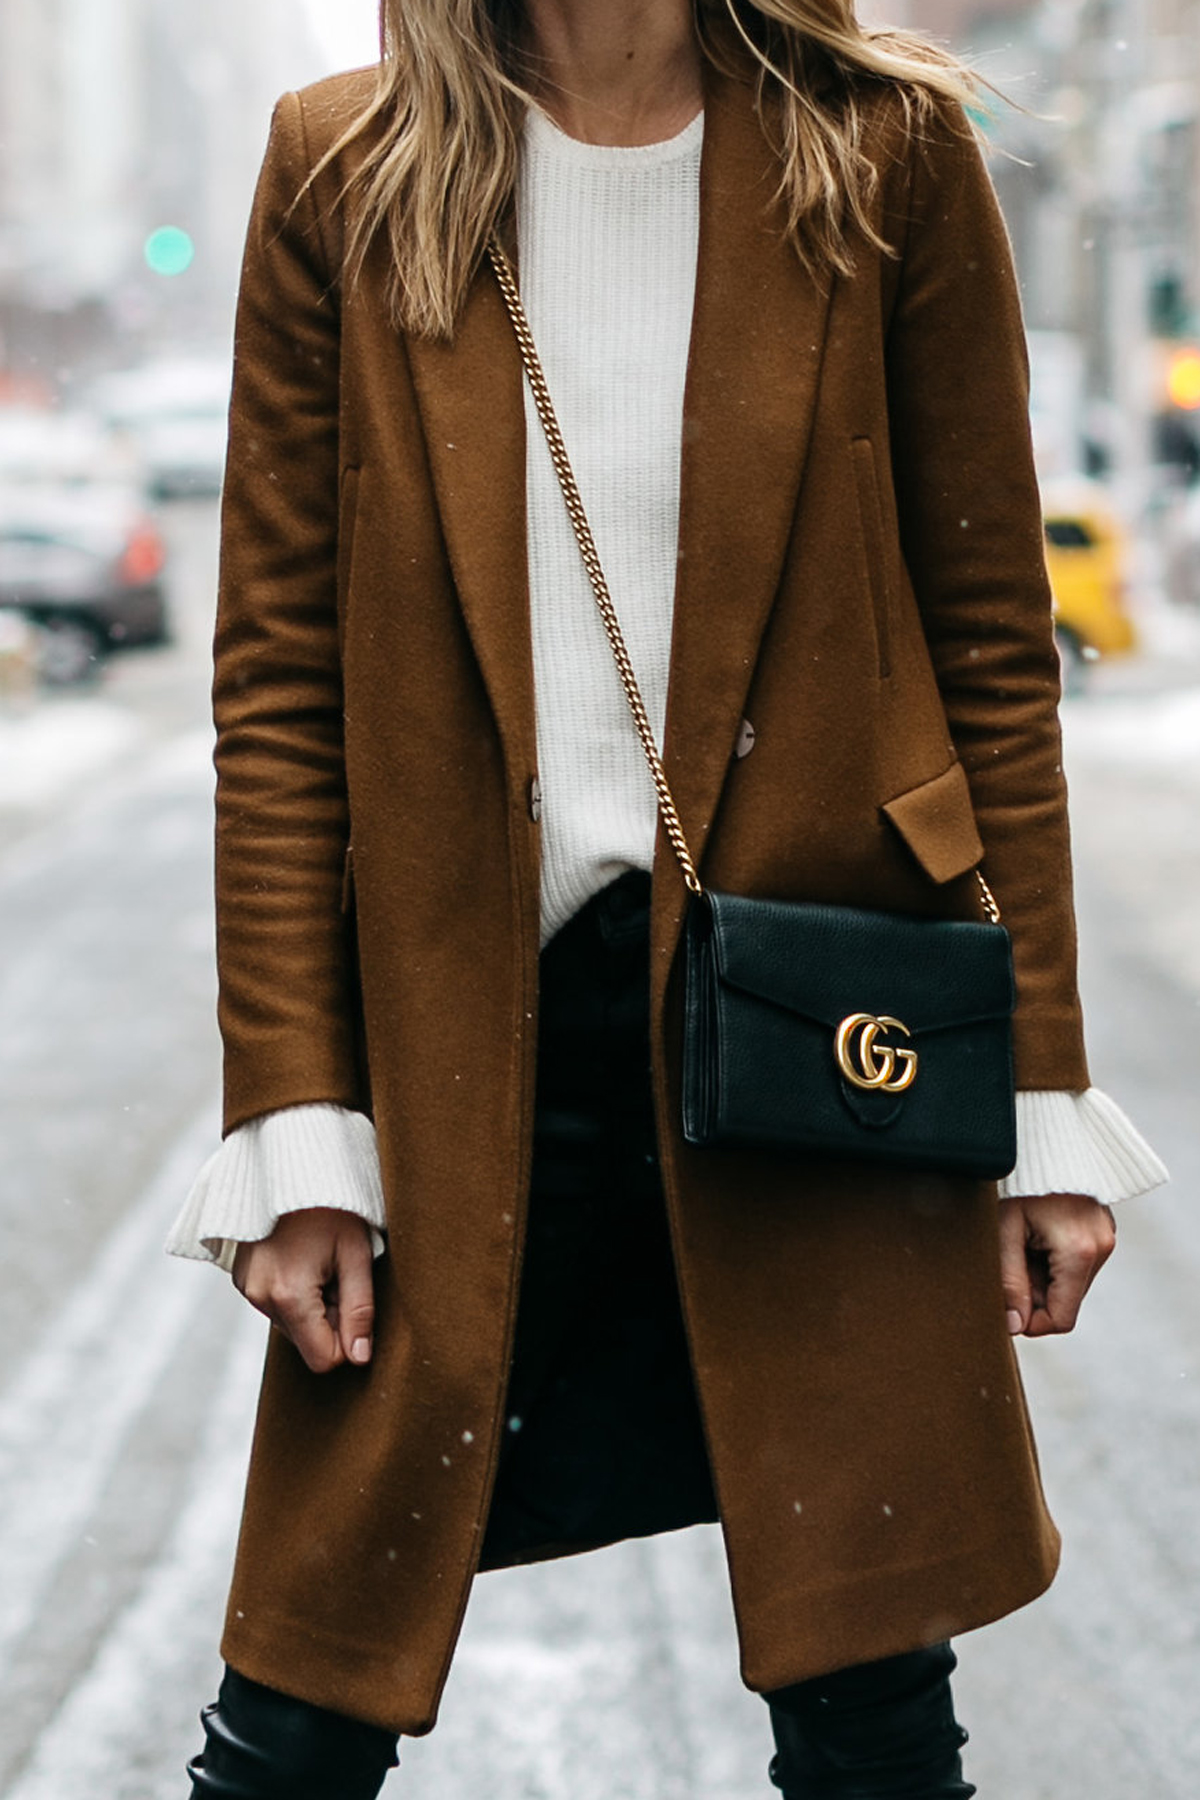 NYFW, Winter Outfit, Camel Wool Coat, White Ruffle Sleeve Sweater, Black Faux Leather Pants, Gucci Marmont Handbag, Street Style